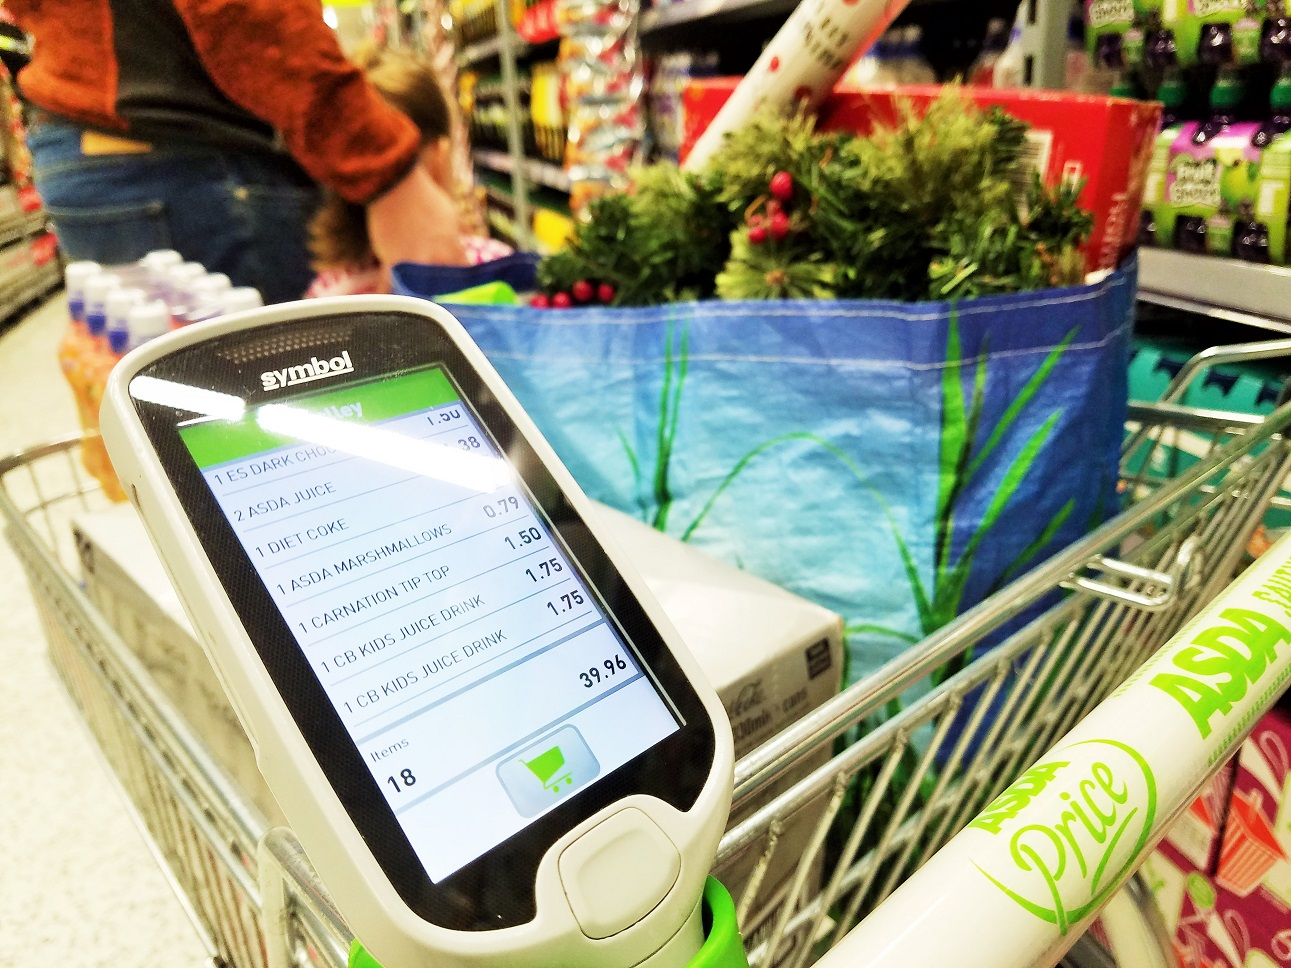 scan and go holder on trolley asda